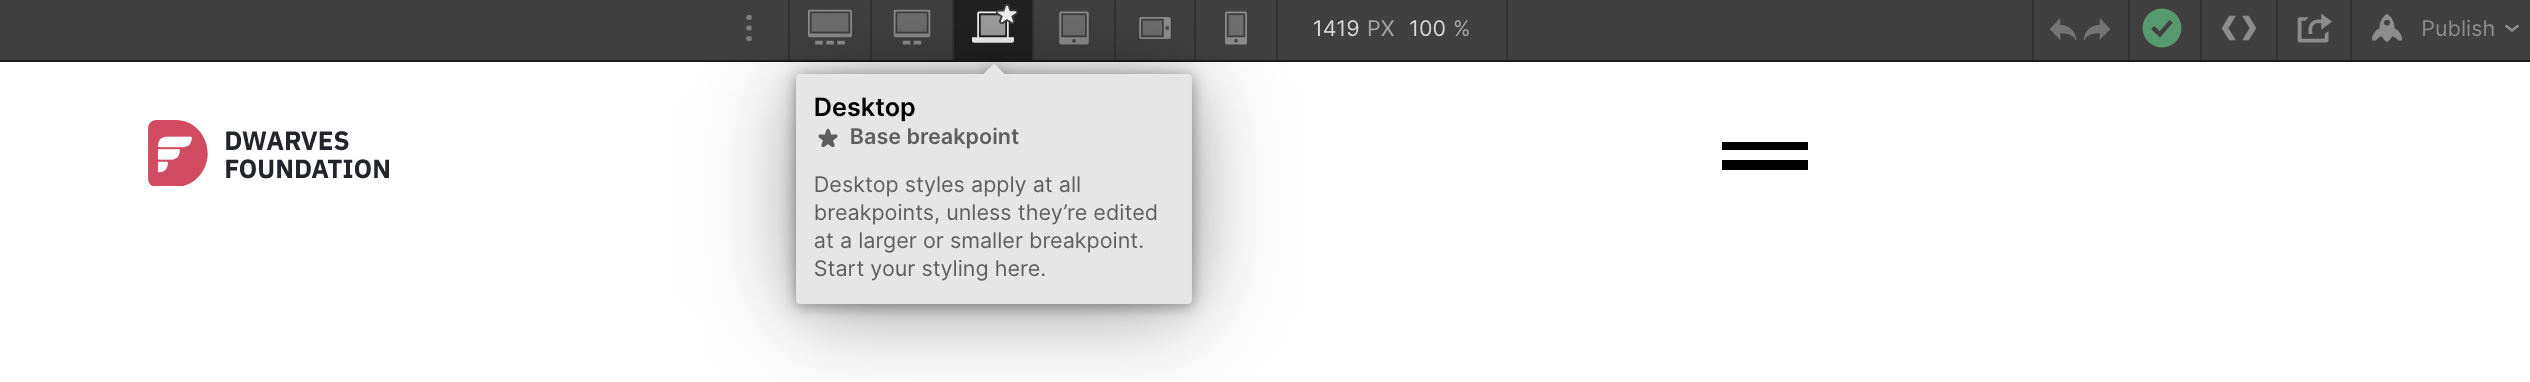 It always starts with a Base breakpoint screen.